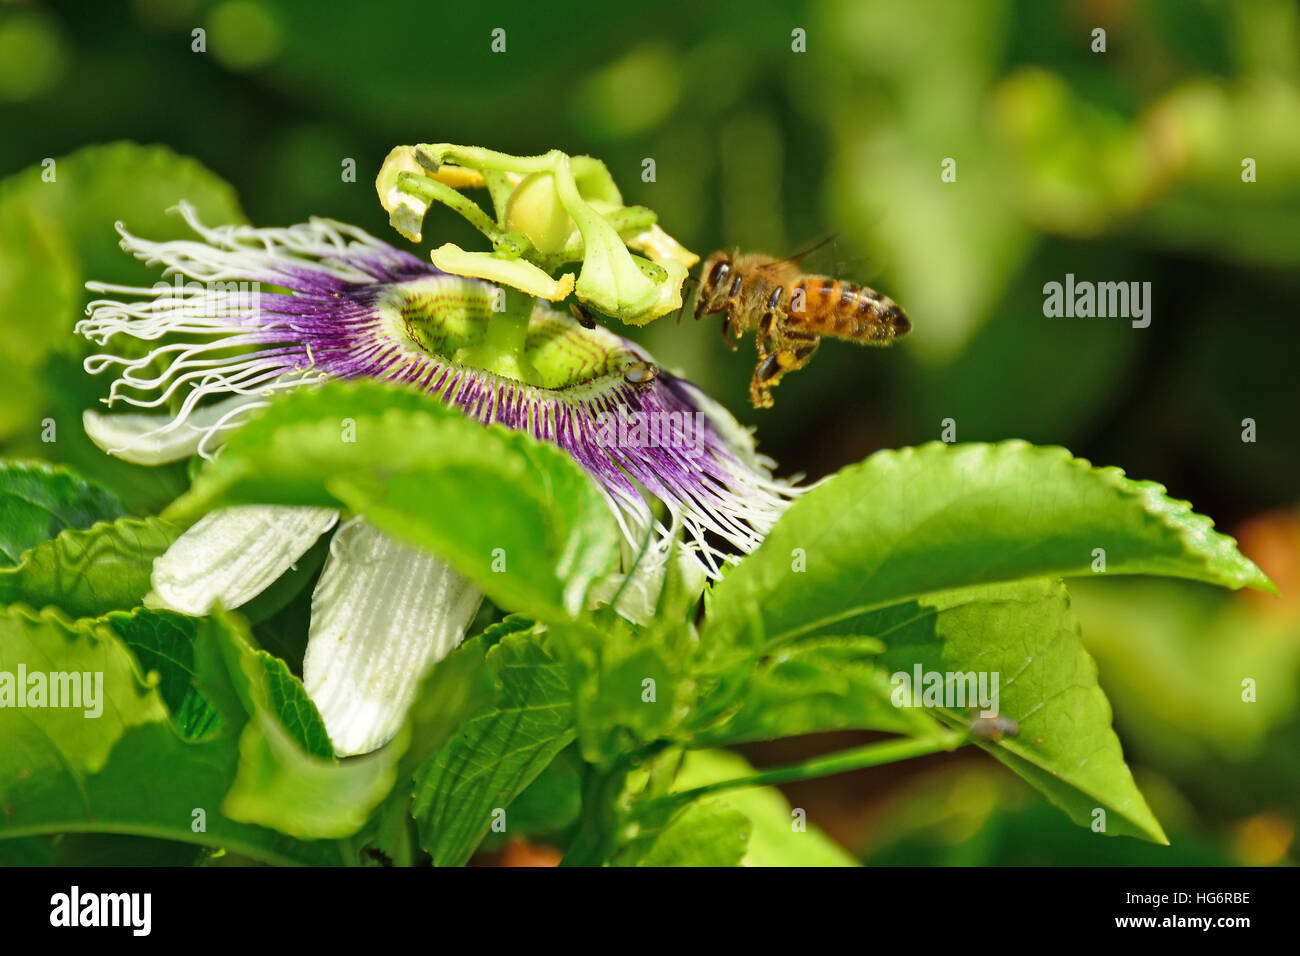 Bee pollinating passion fruit flower - Stock Image